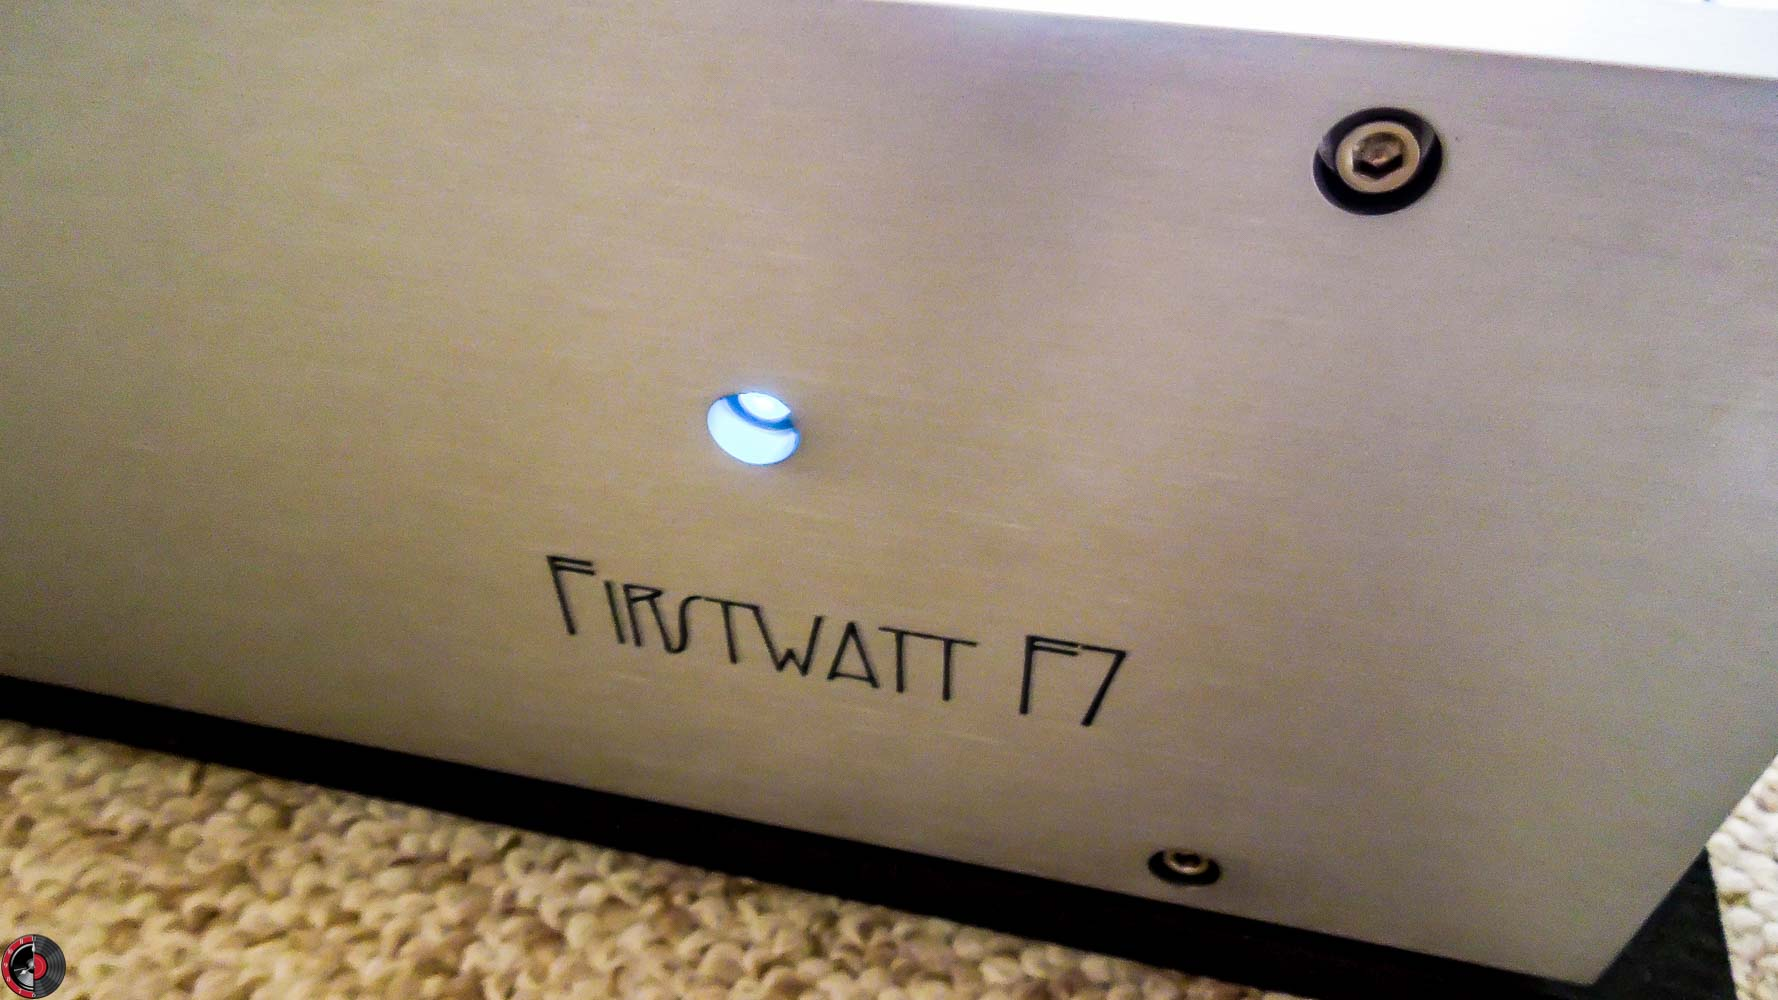 Review: J2, SIT-1, and F7 First Watt amplifiers by Nelson Pass